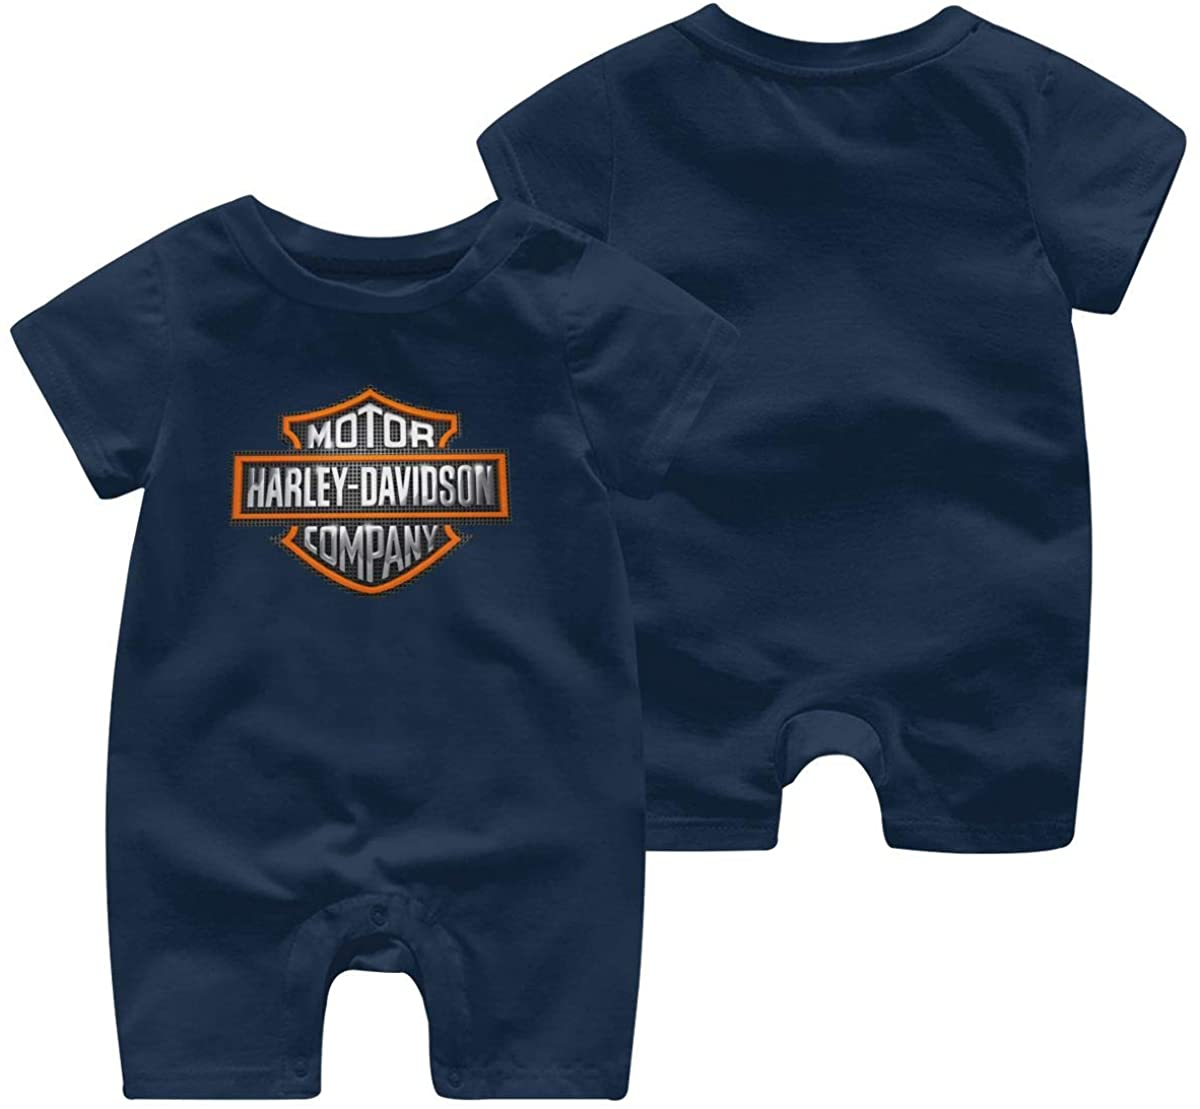 Harley Davidson One Piece Outfits Baby Solid Color Rompers with Button Kids Short Sleeve Playsuit Jumpsuits Cotton Clothing 12 Months Navy